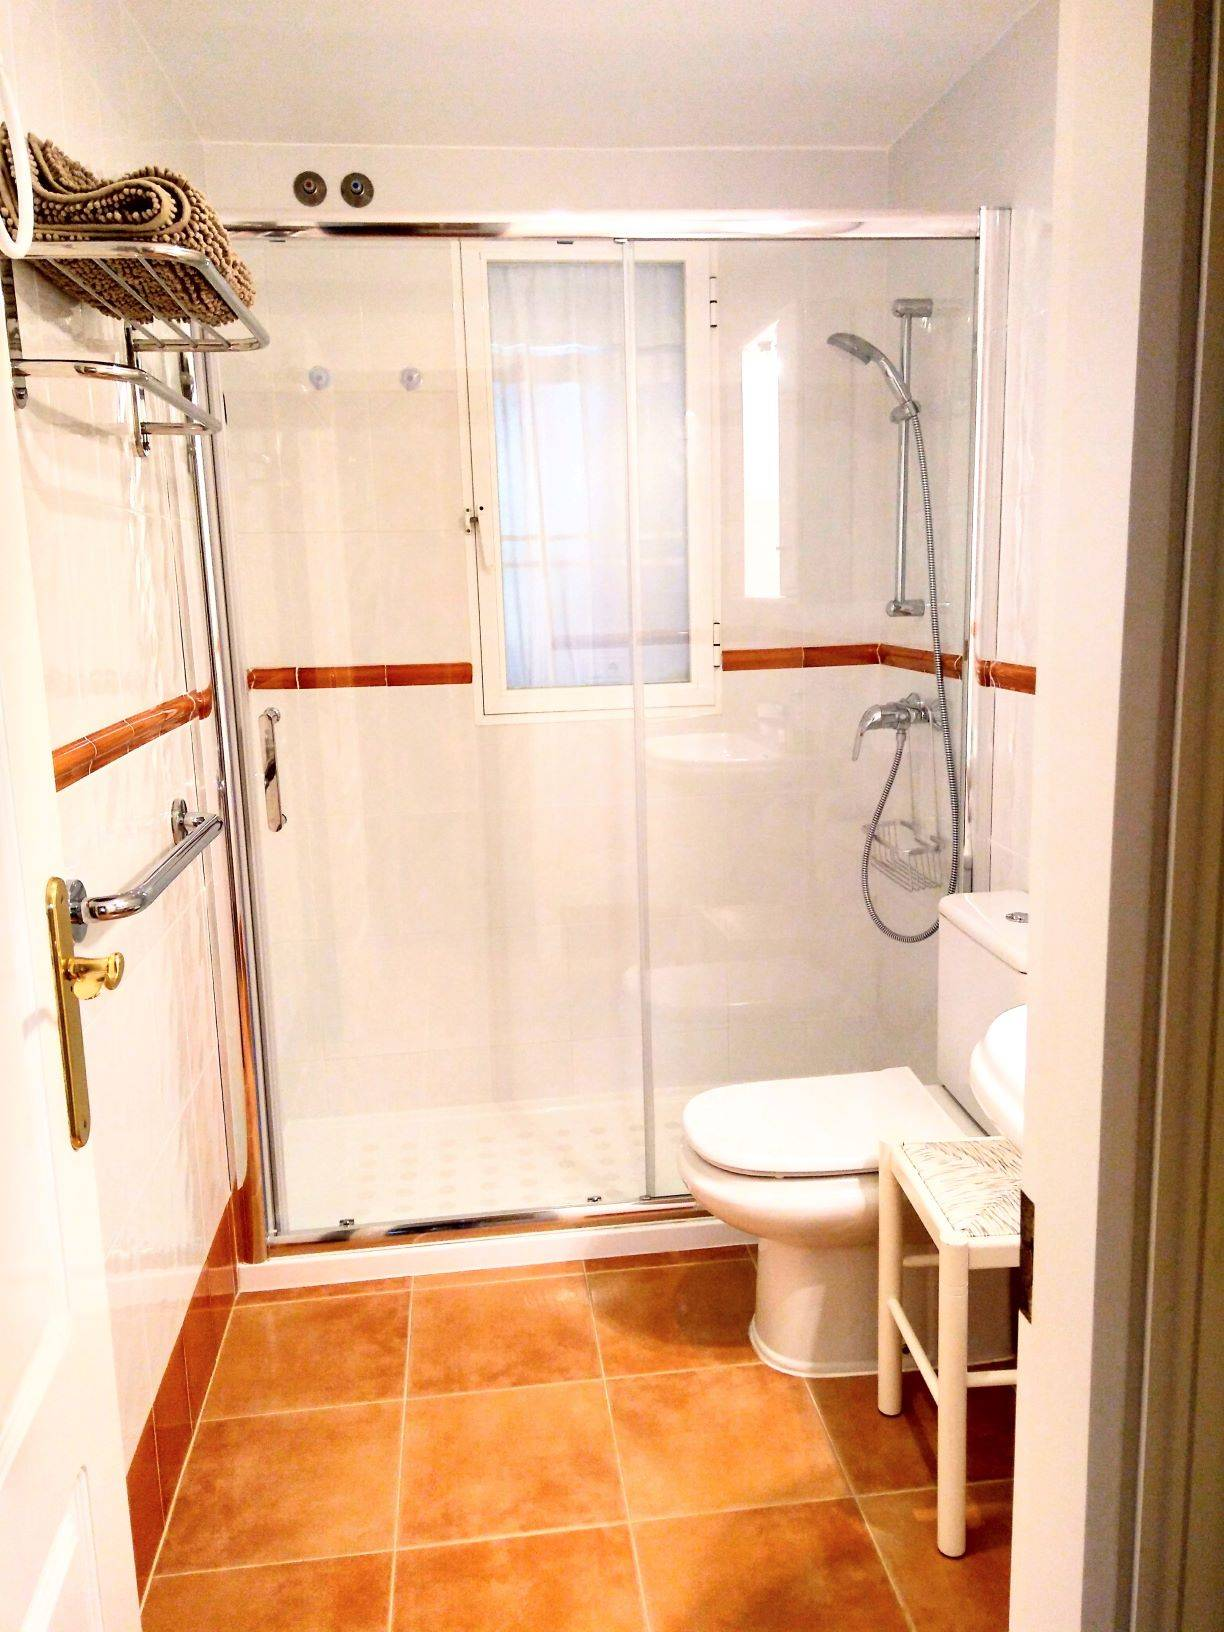 shower, toilet, sink, tiles, white, brown